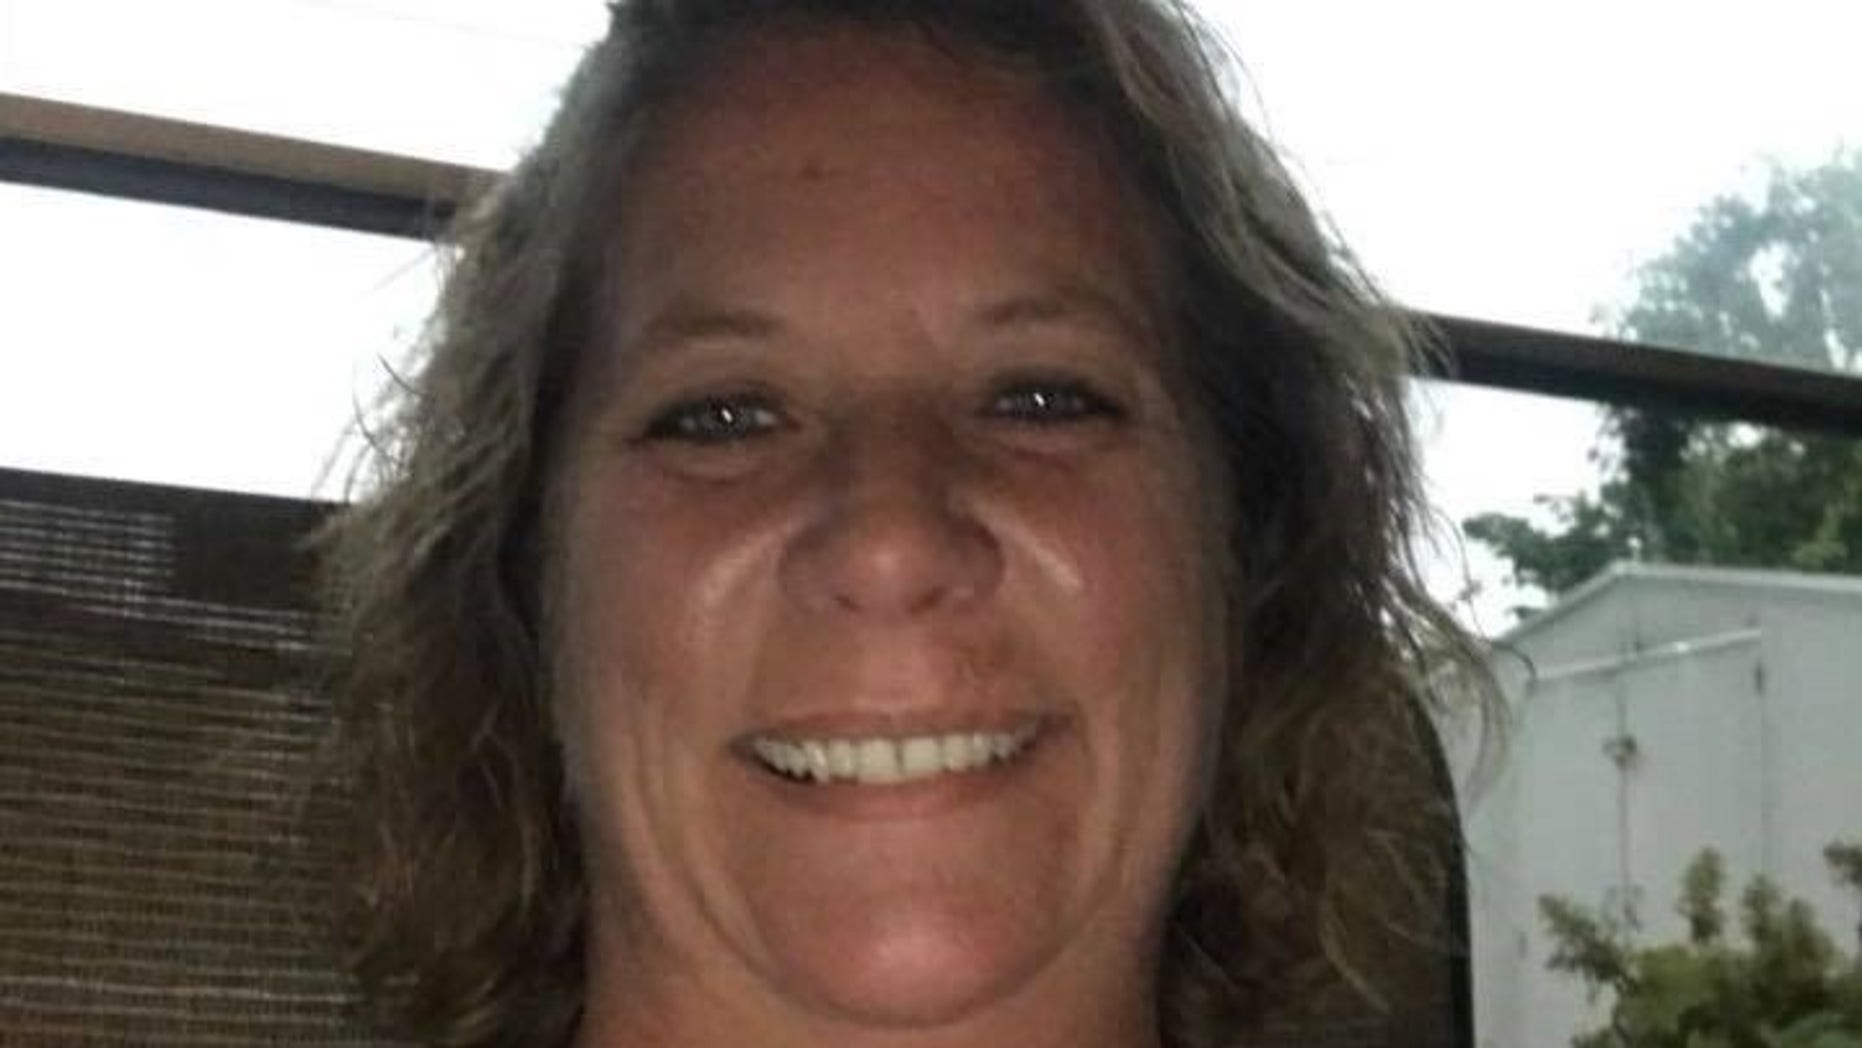 The disappearance of Cheryl Coker was classified a homicide on Tuesday after investigators found evidence the 46-year-old was killed.